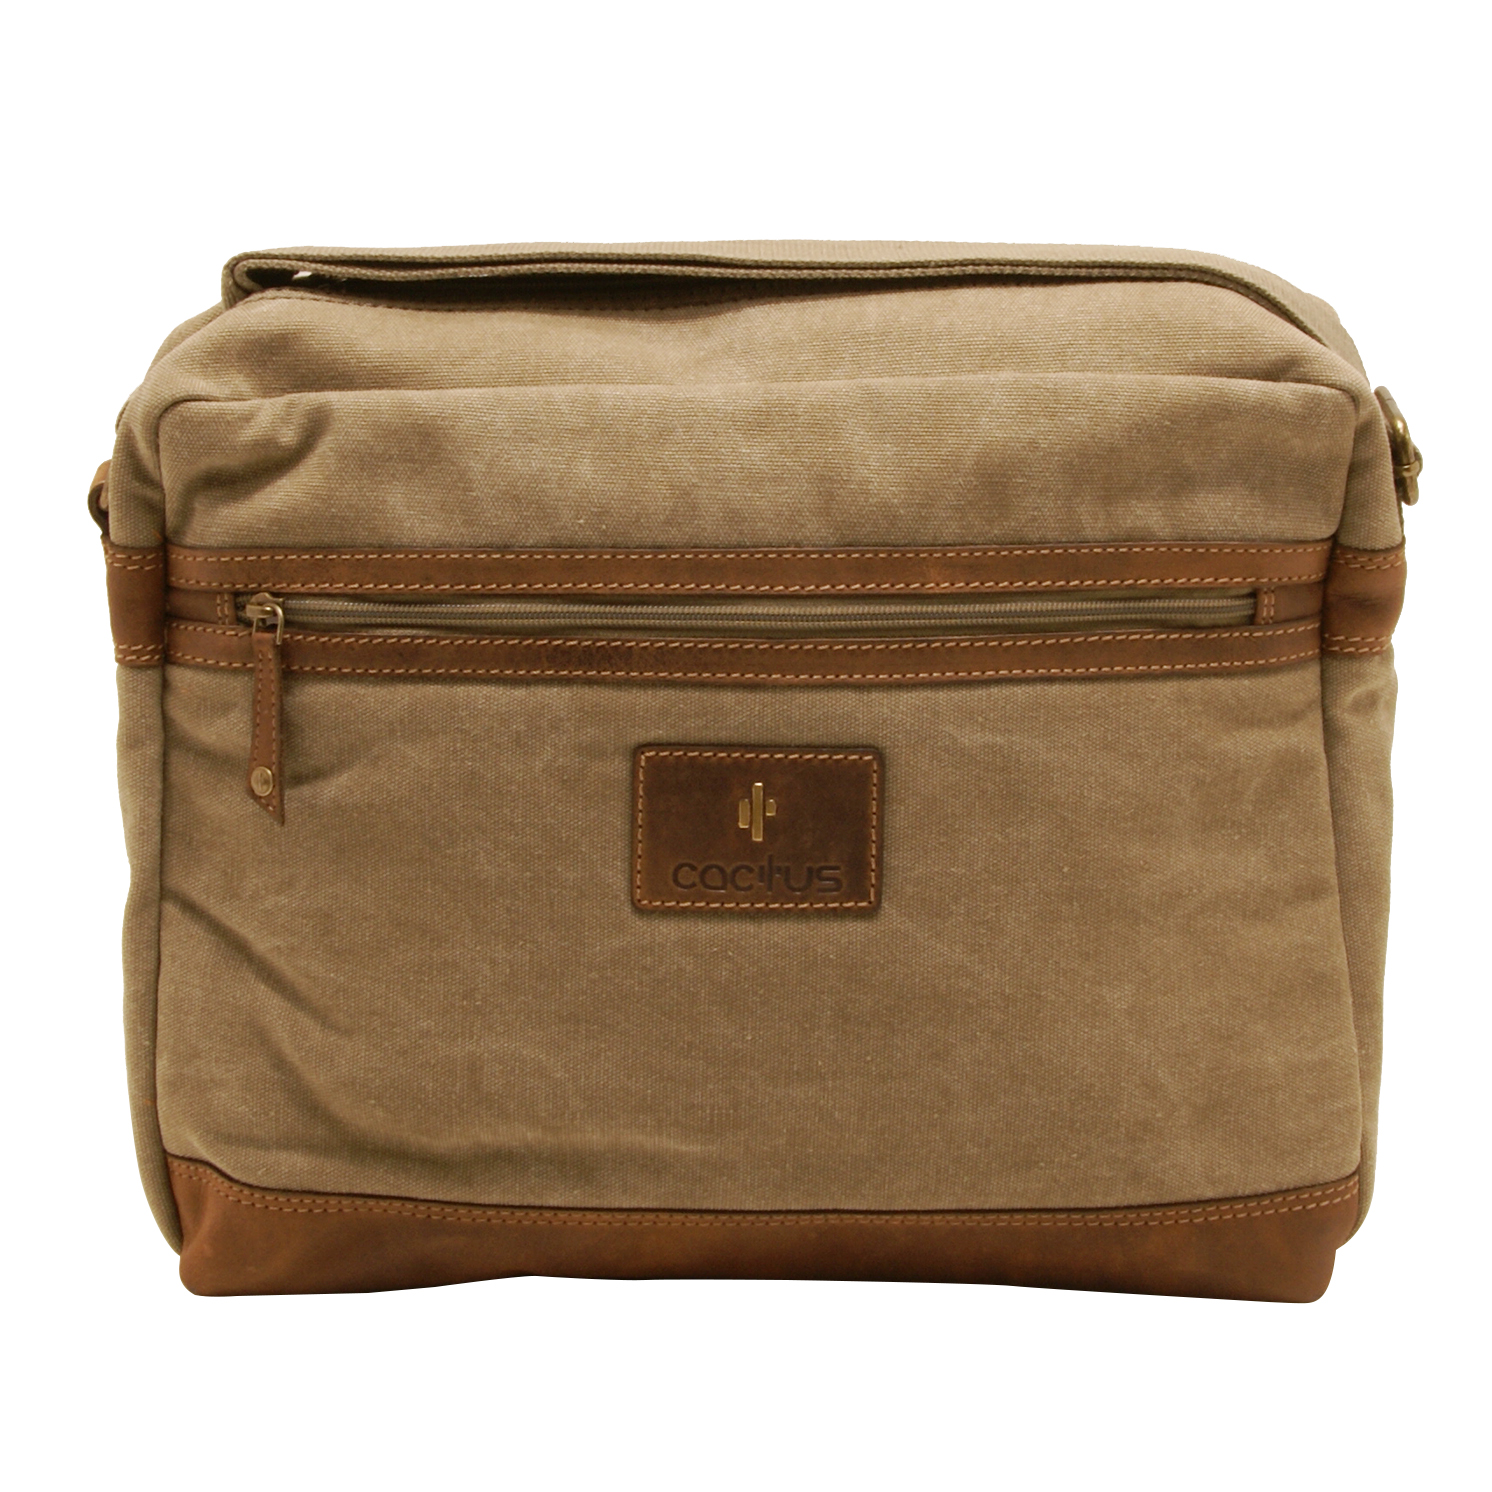 Cactus – Zipped Top Messenger Bag with Laptop/Tablet Sleeve in Khaki Canvas